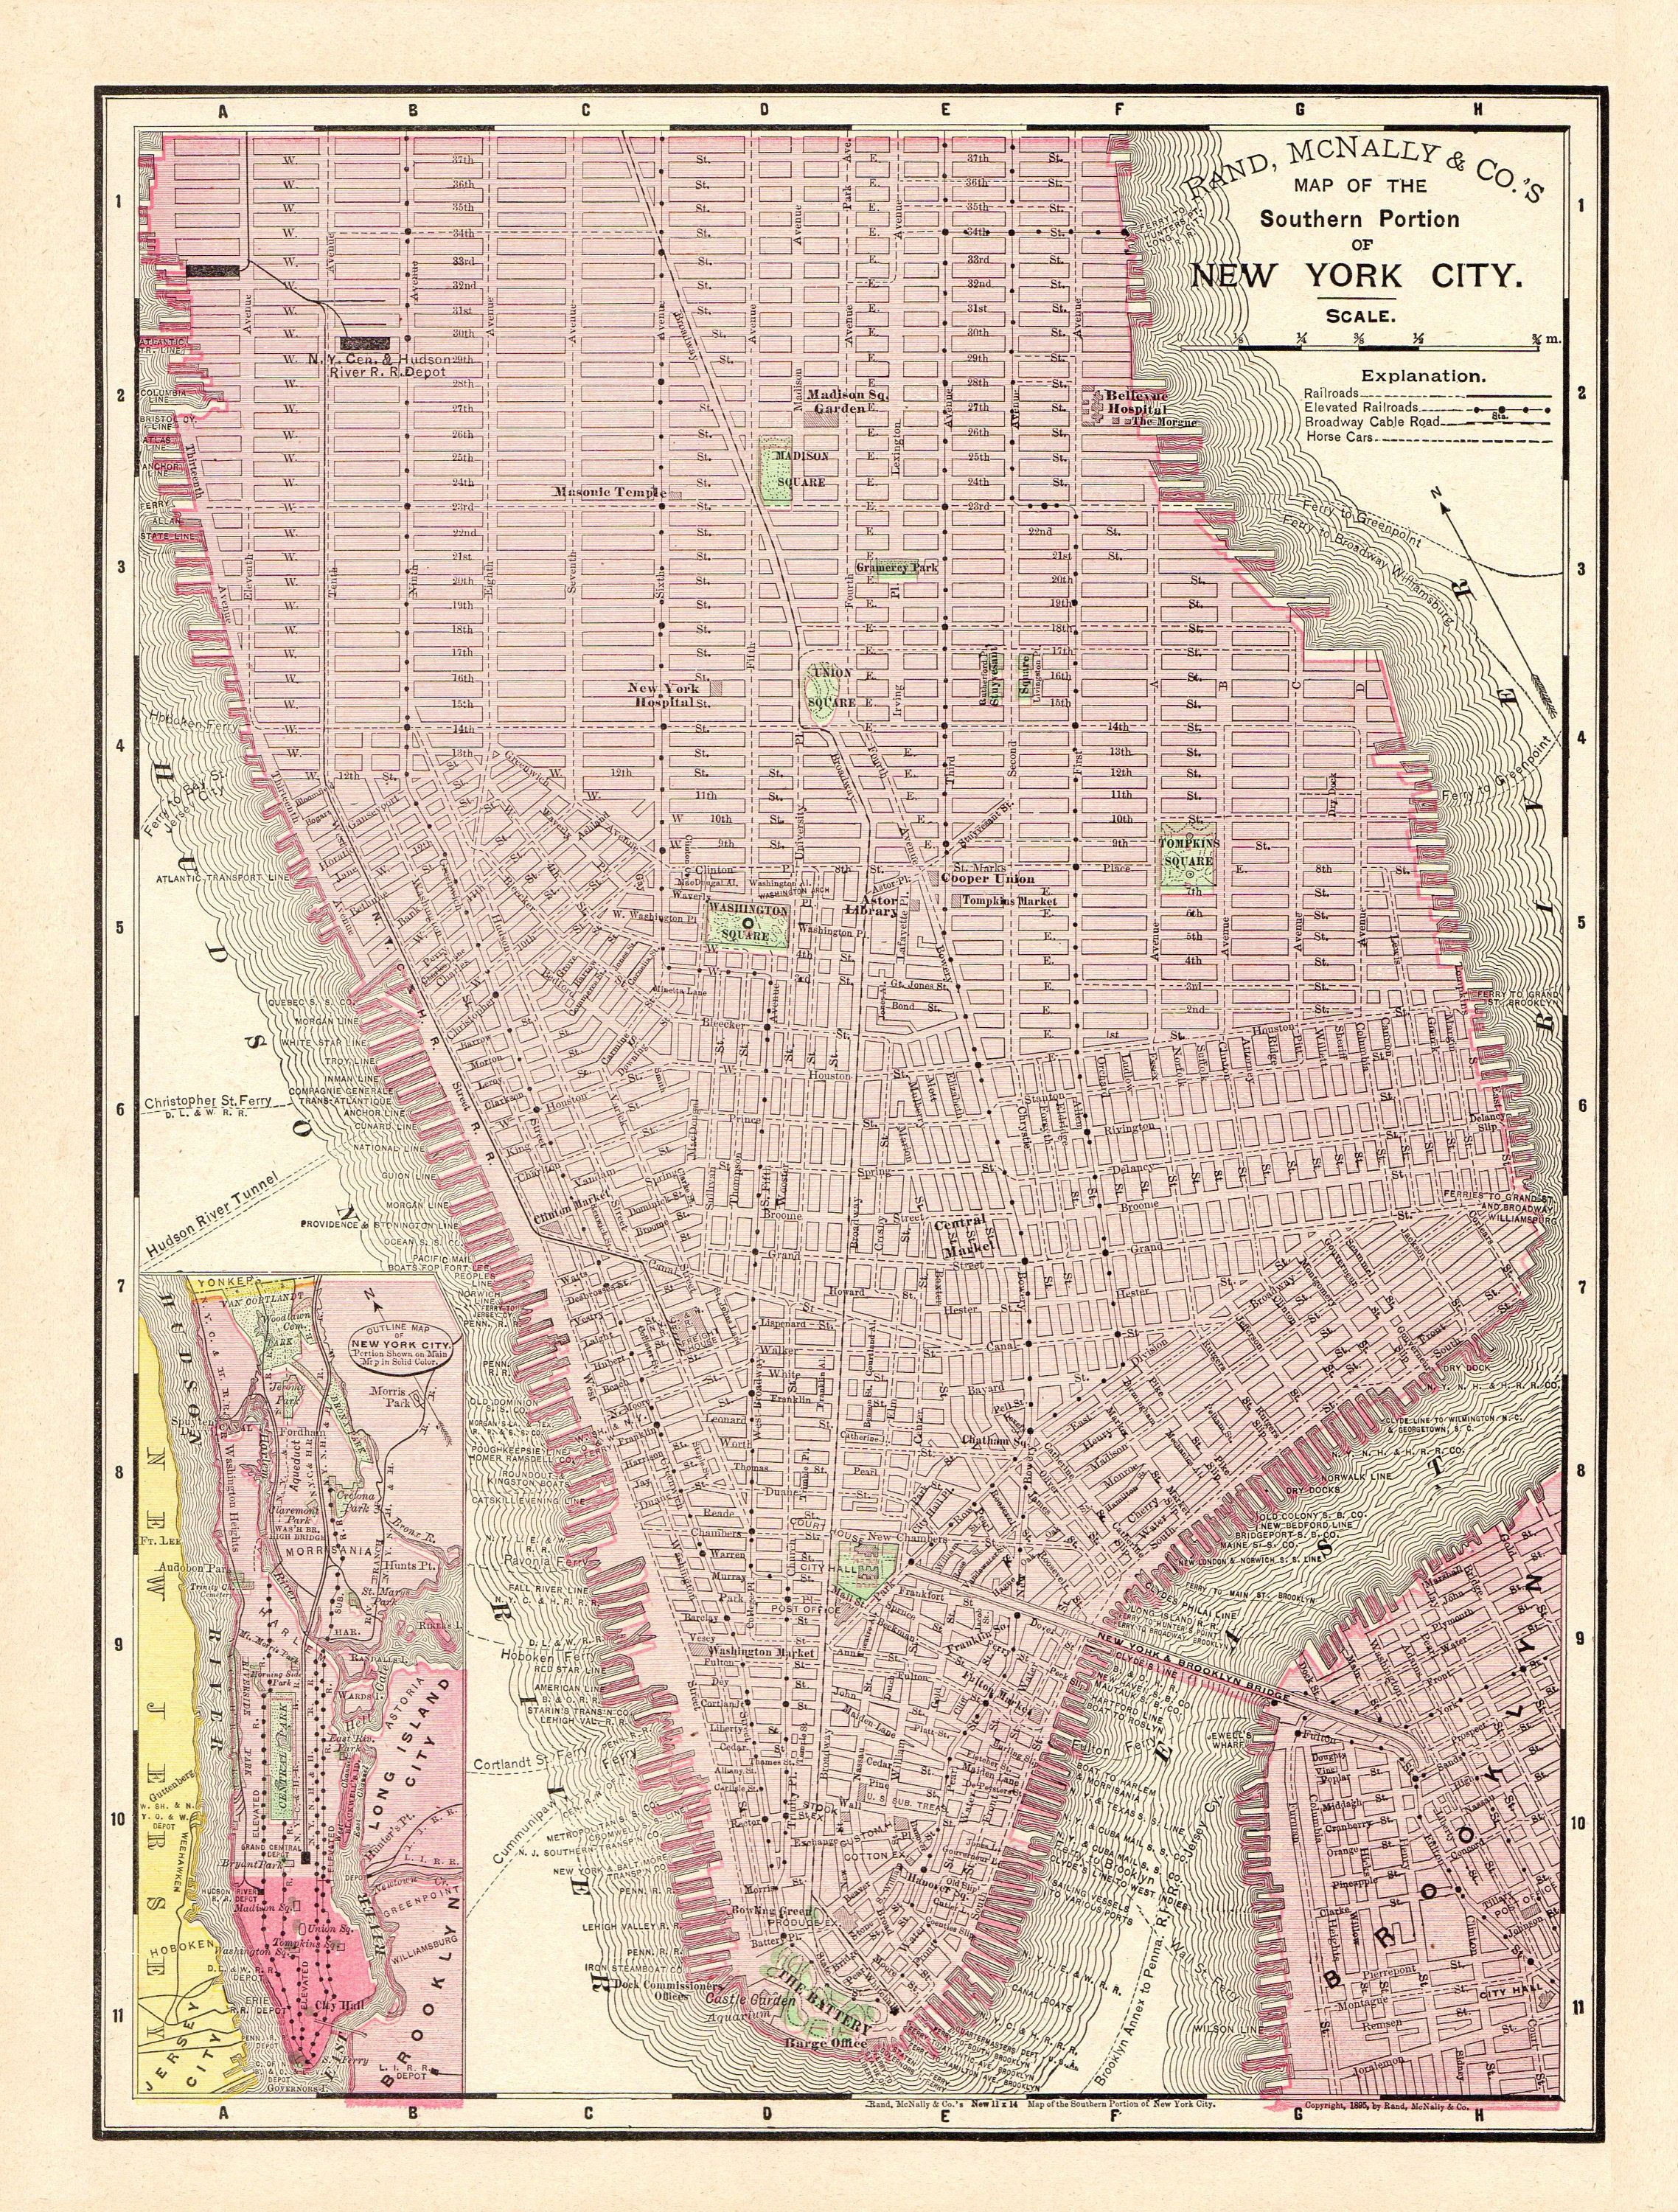 1895 Antique New York City Map Reproduction Print Map Of Manhattan - Antique Texas Map Reproductions